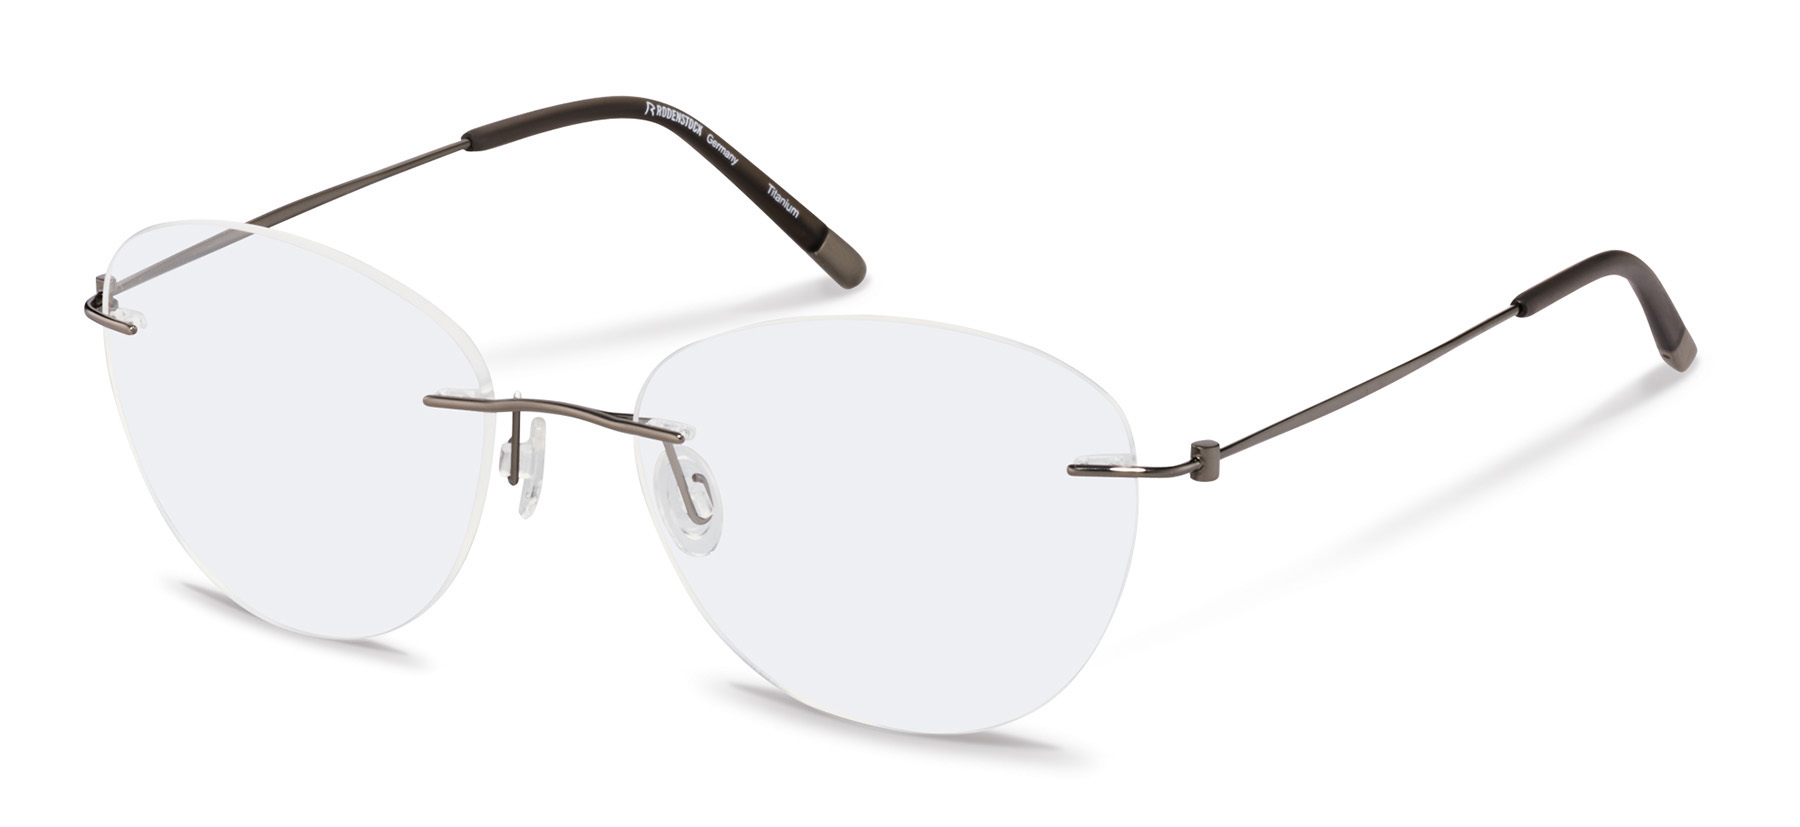 Rodenstock-Monture de correction-R7093-gunmetal/grey